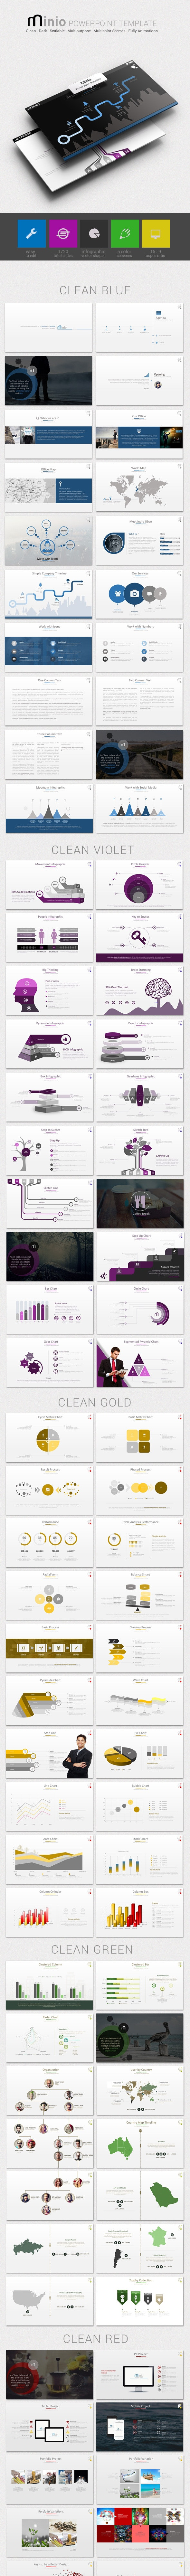 Minio PowerPoint Presentation Template - Business PowerPoint Templates